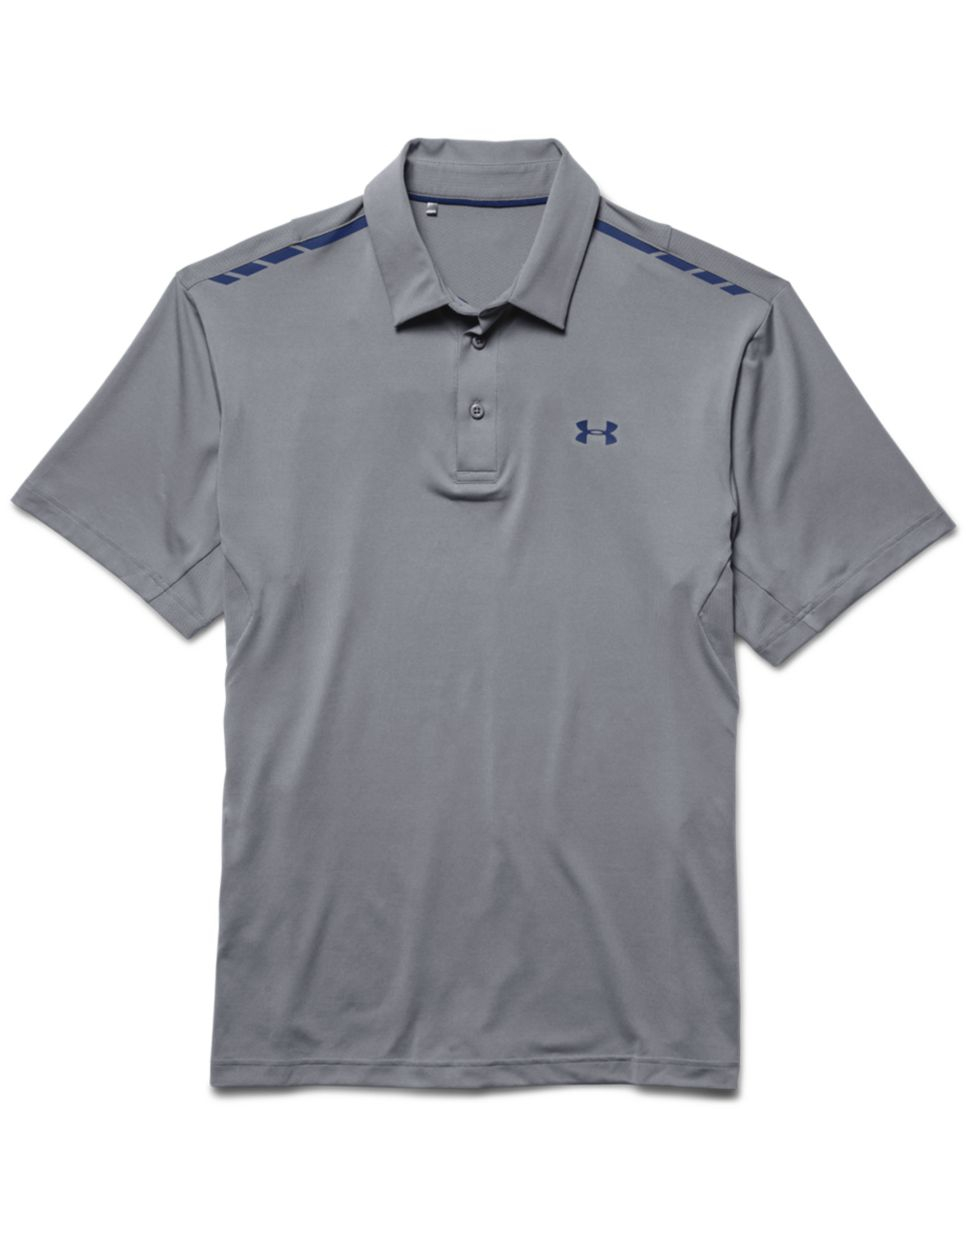 Under armour classic polo shirt in gray for men grey lyst for Gray under armour shirt